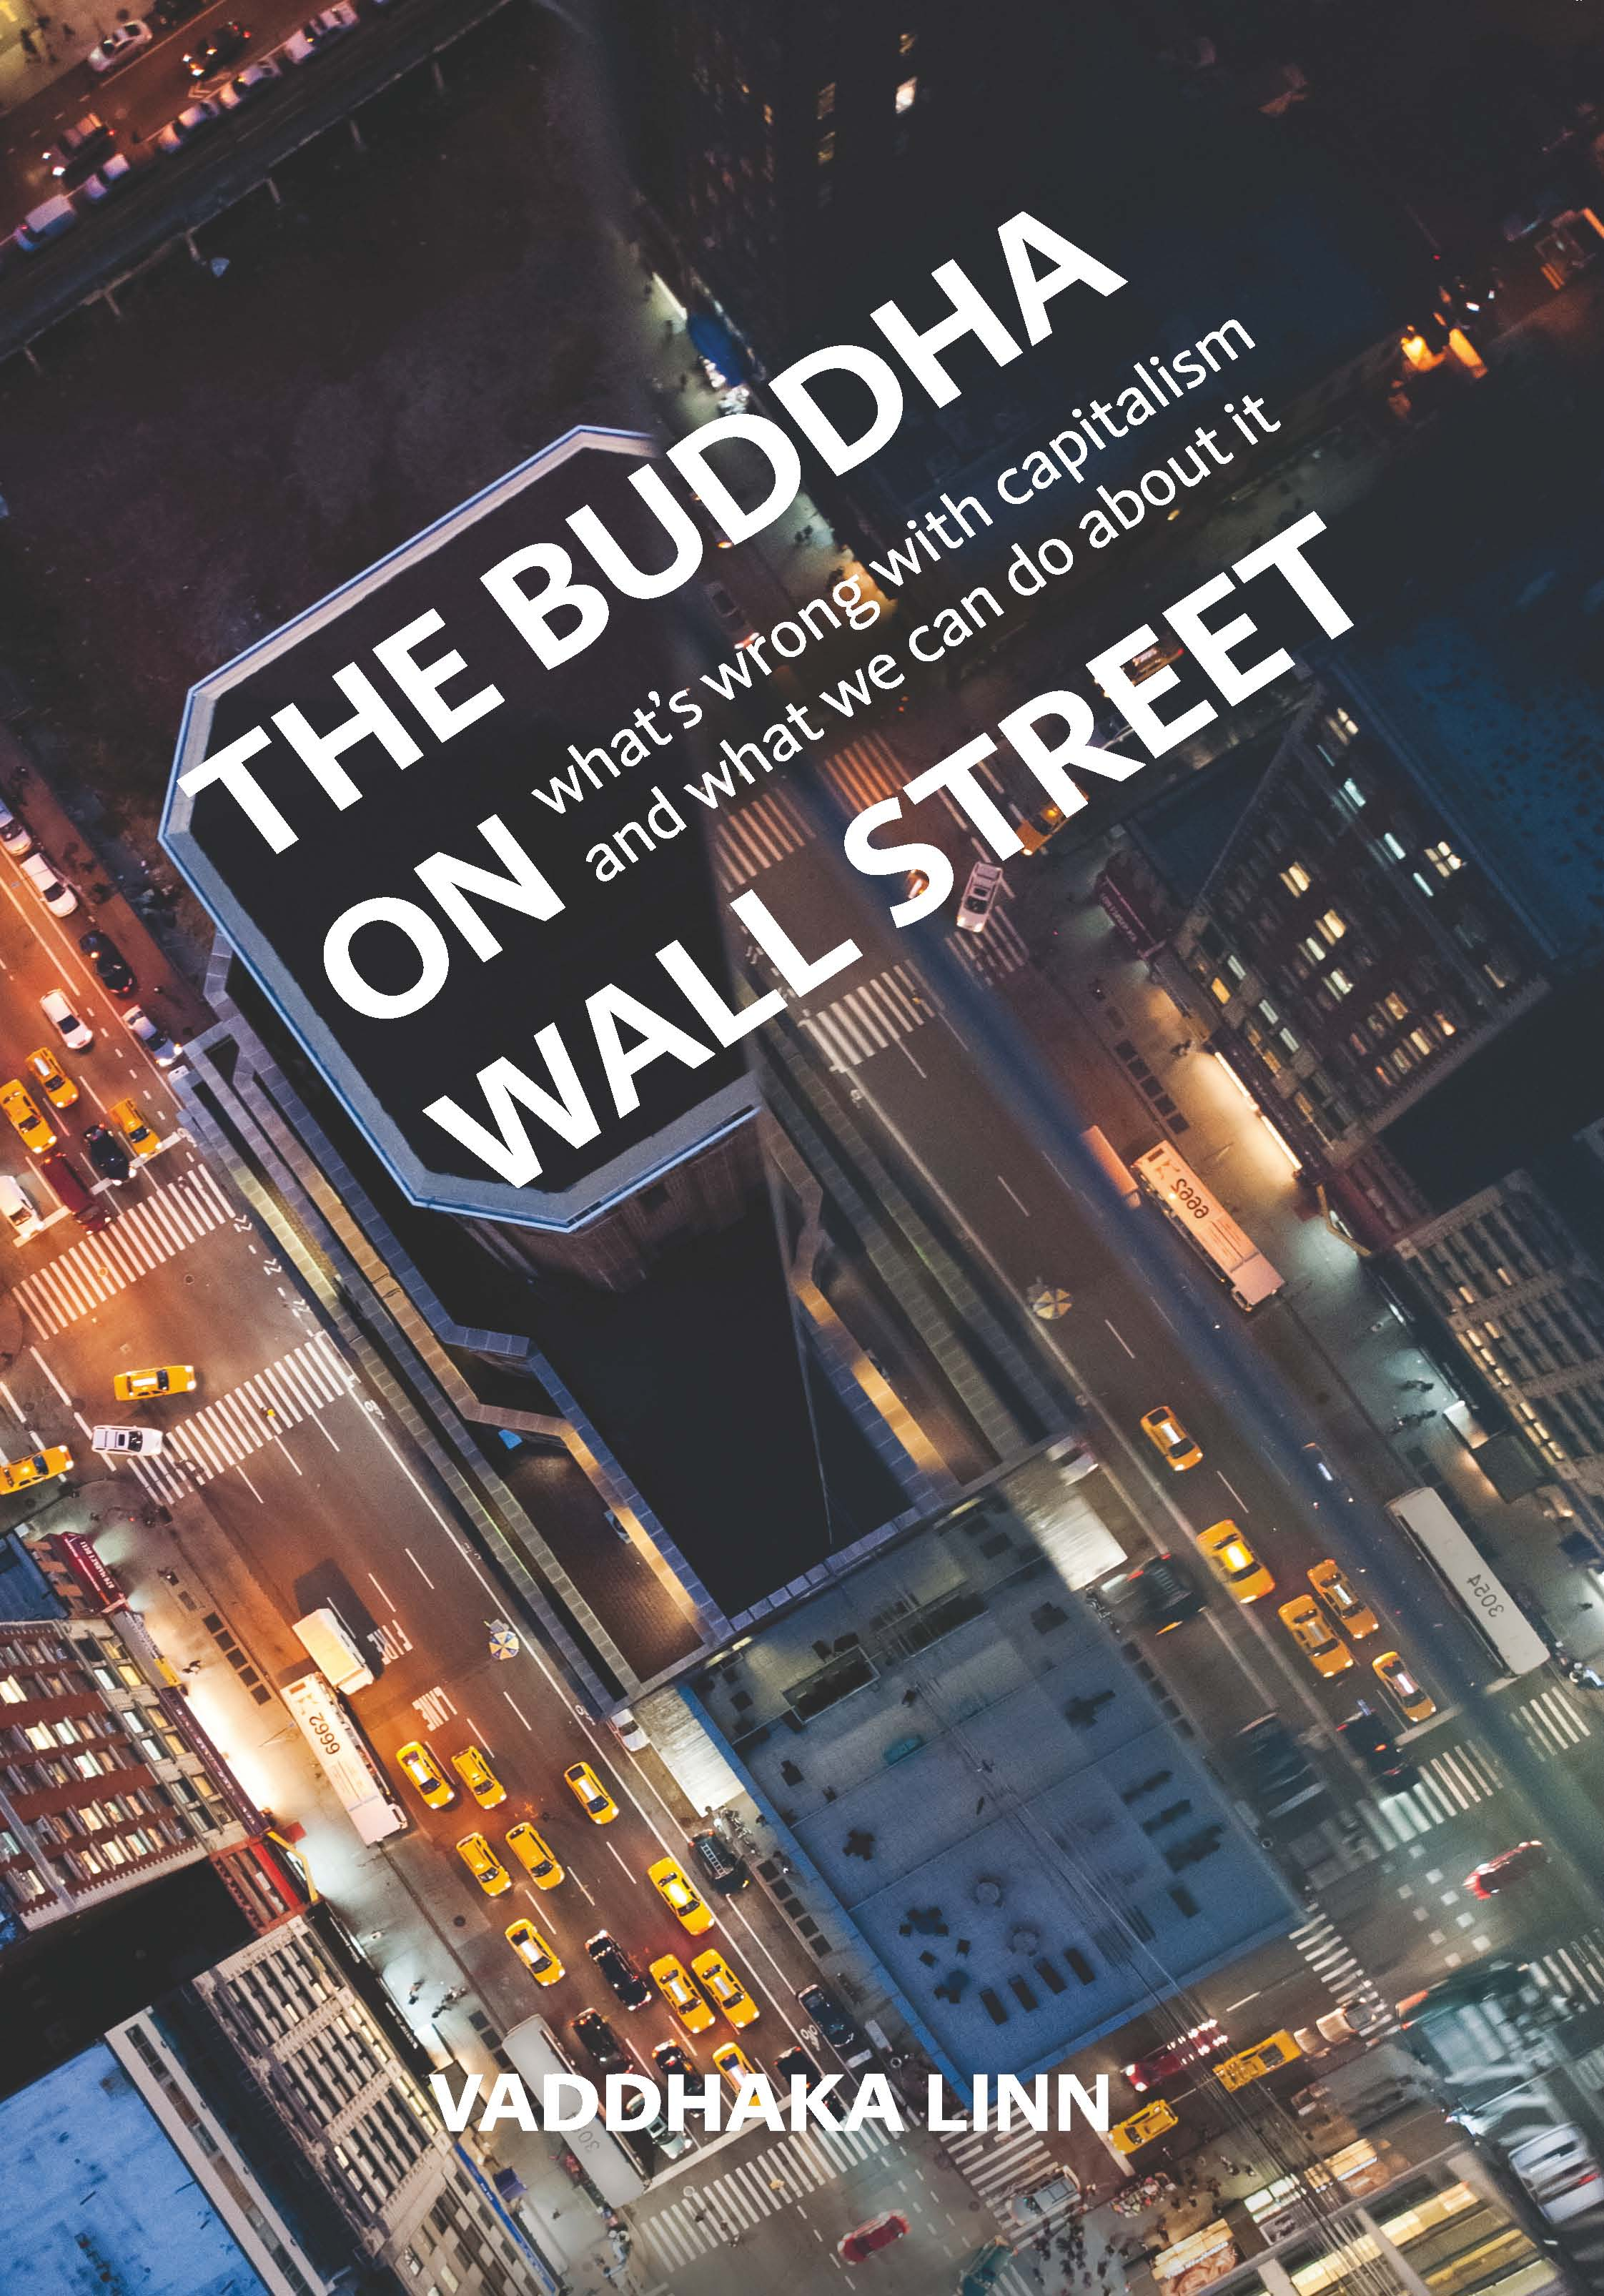 The Buddha on Wall Street